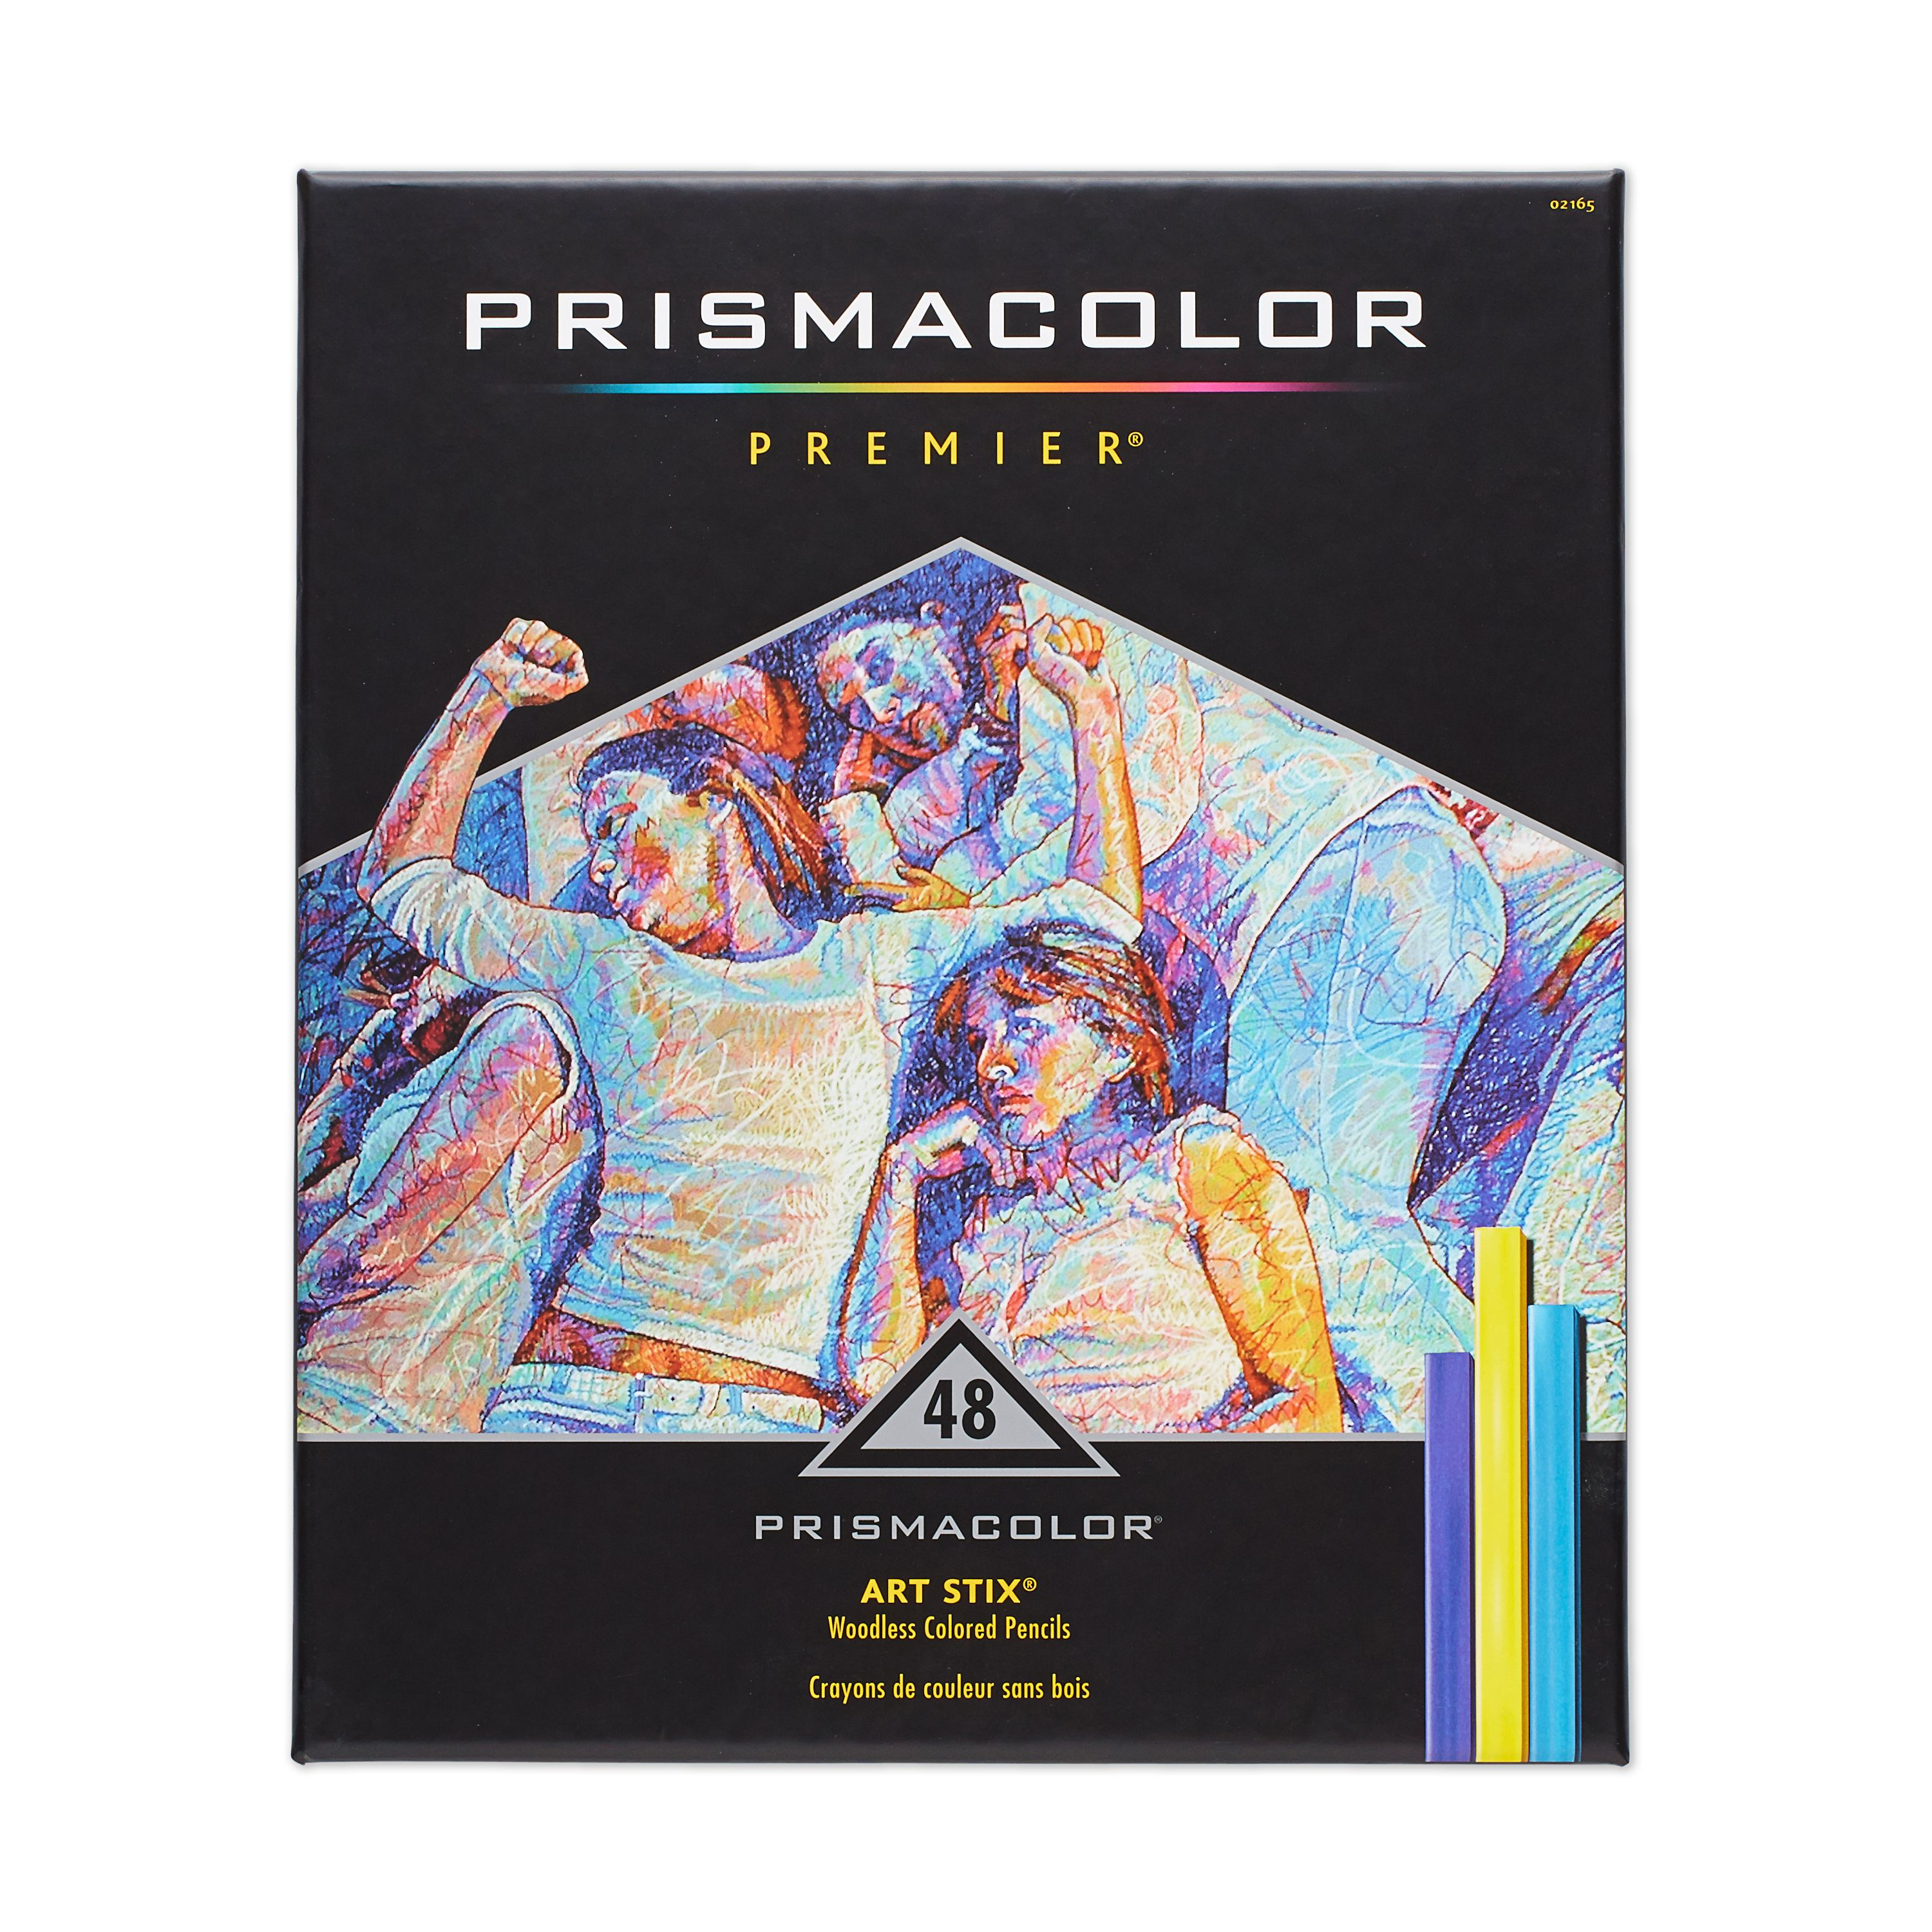 PrismaColor ART STIX Woodless Colored Pencils 48-Set